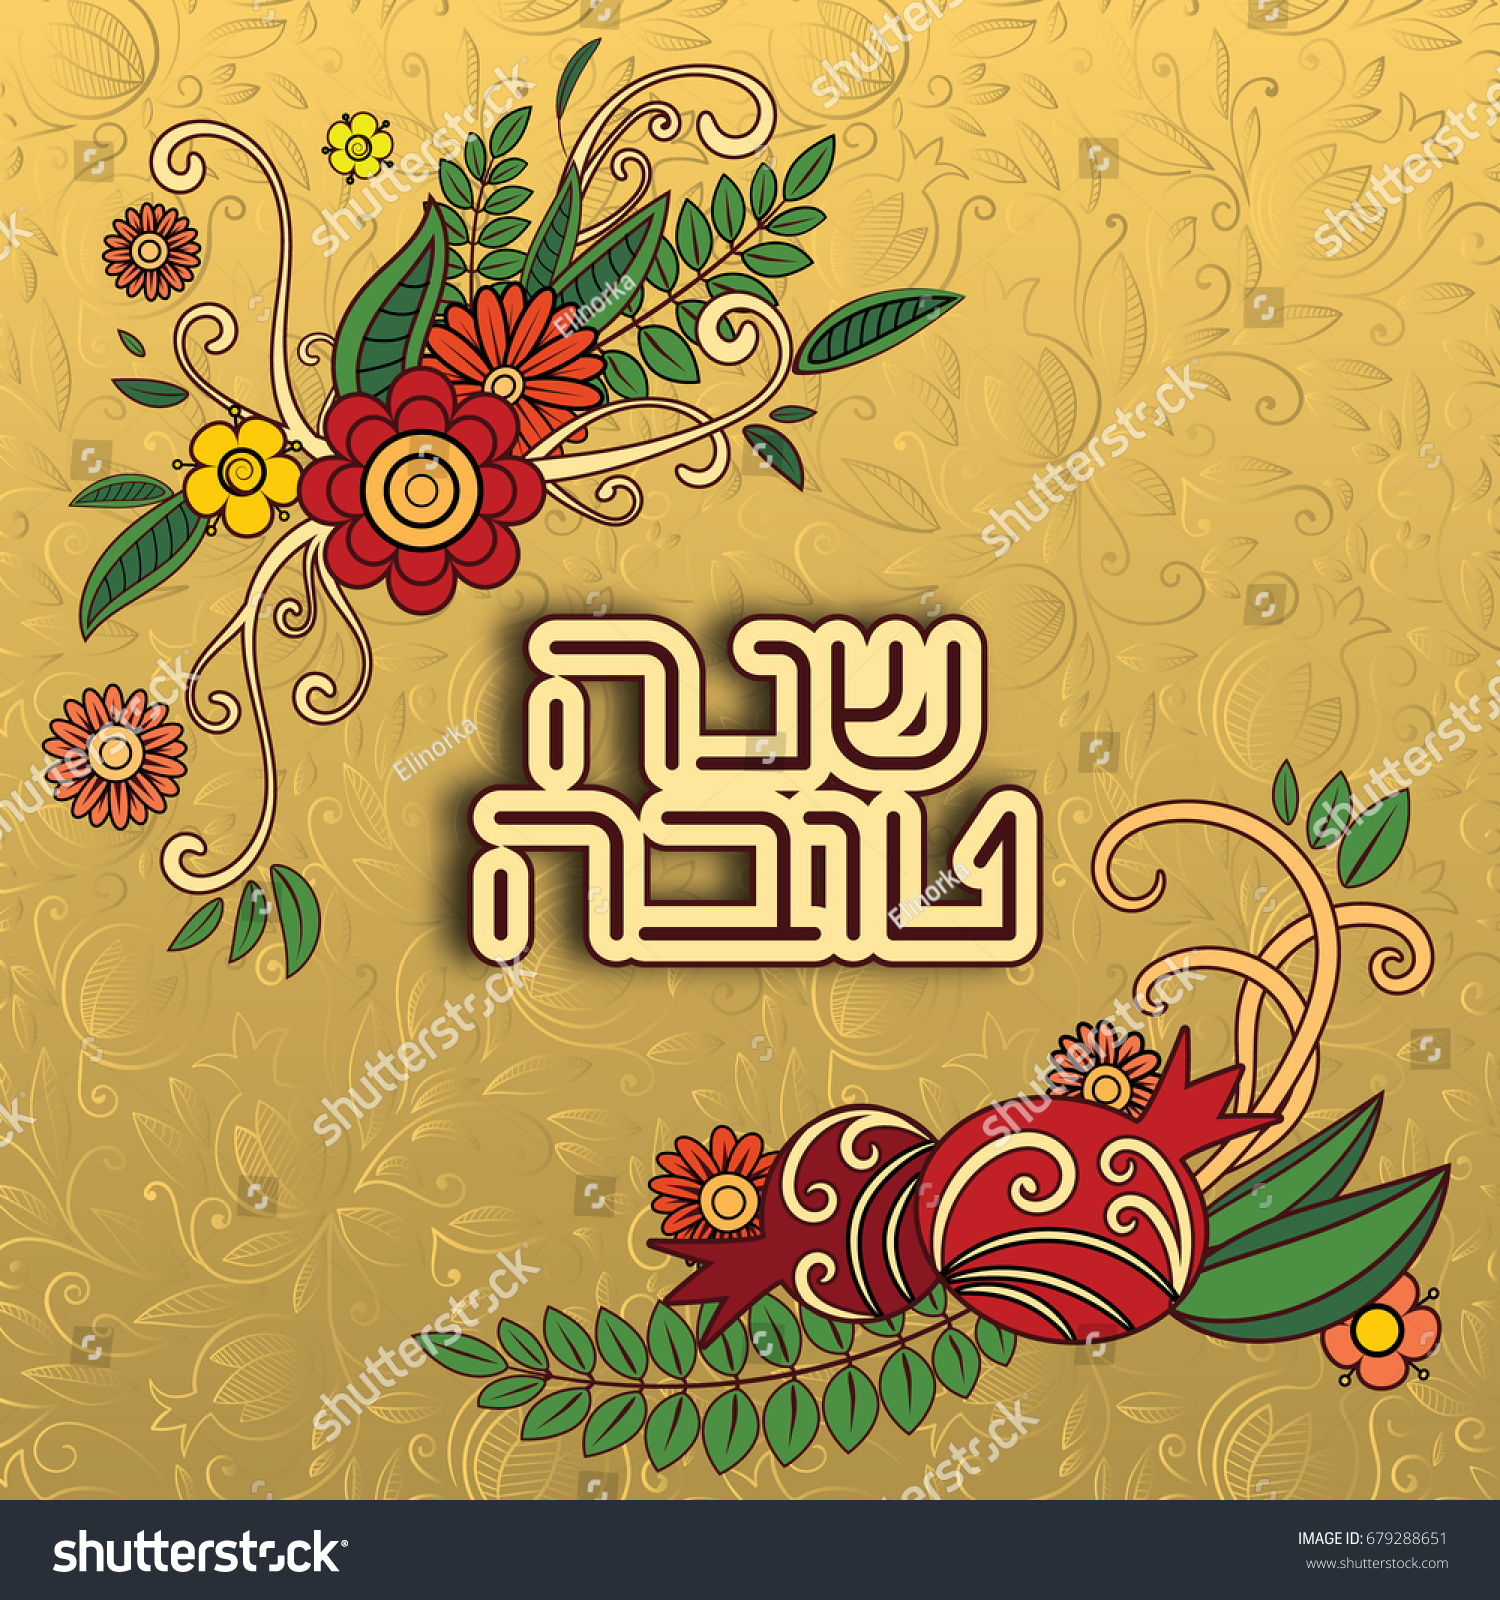 Rosh hashanah jewish new year greeting stock vector 679288651 rosh hashanah jewish new year greeting card with flowers and pomegranate hebrew text kristyandbryce Image collections